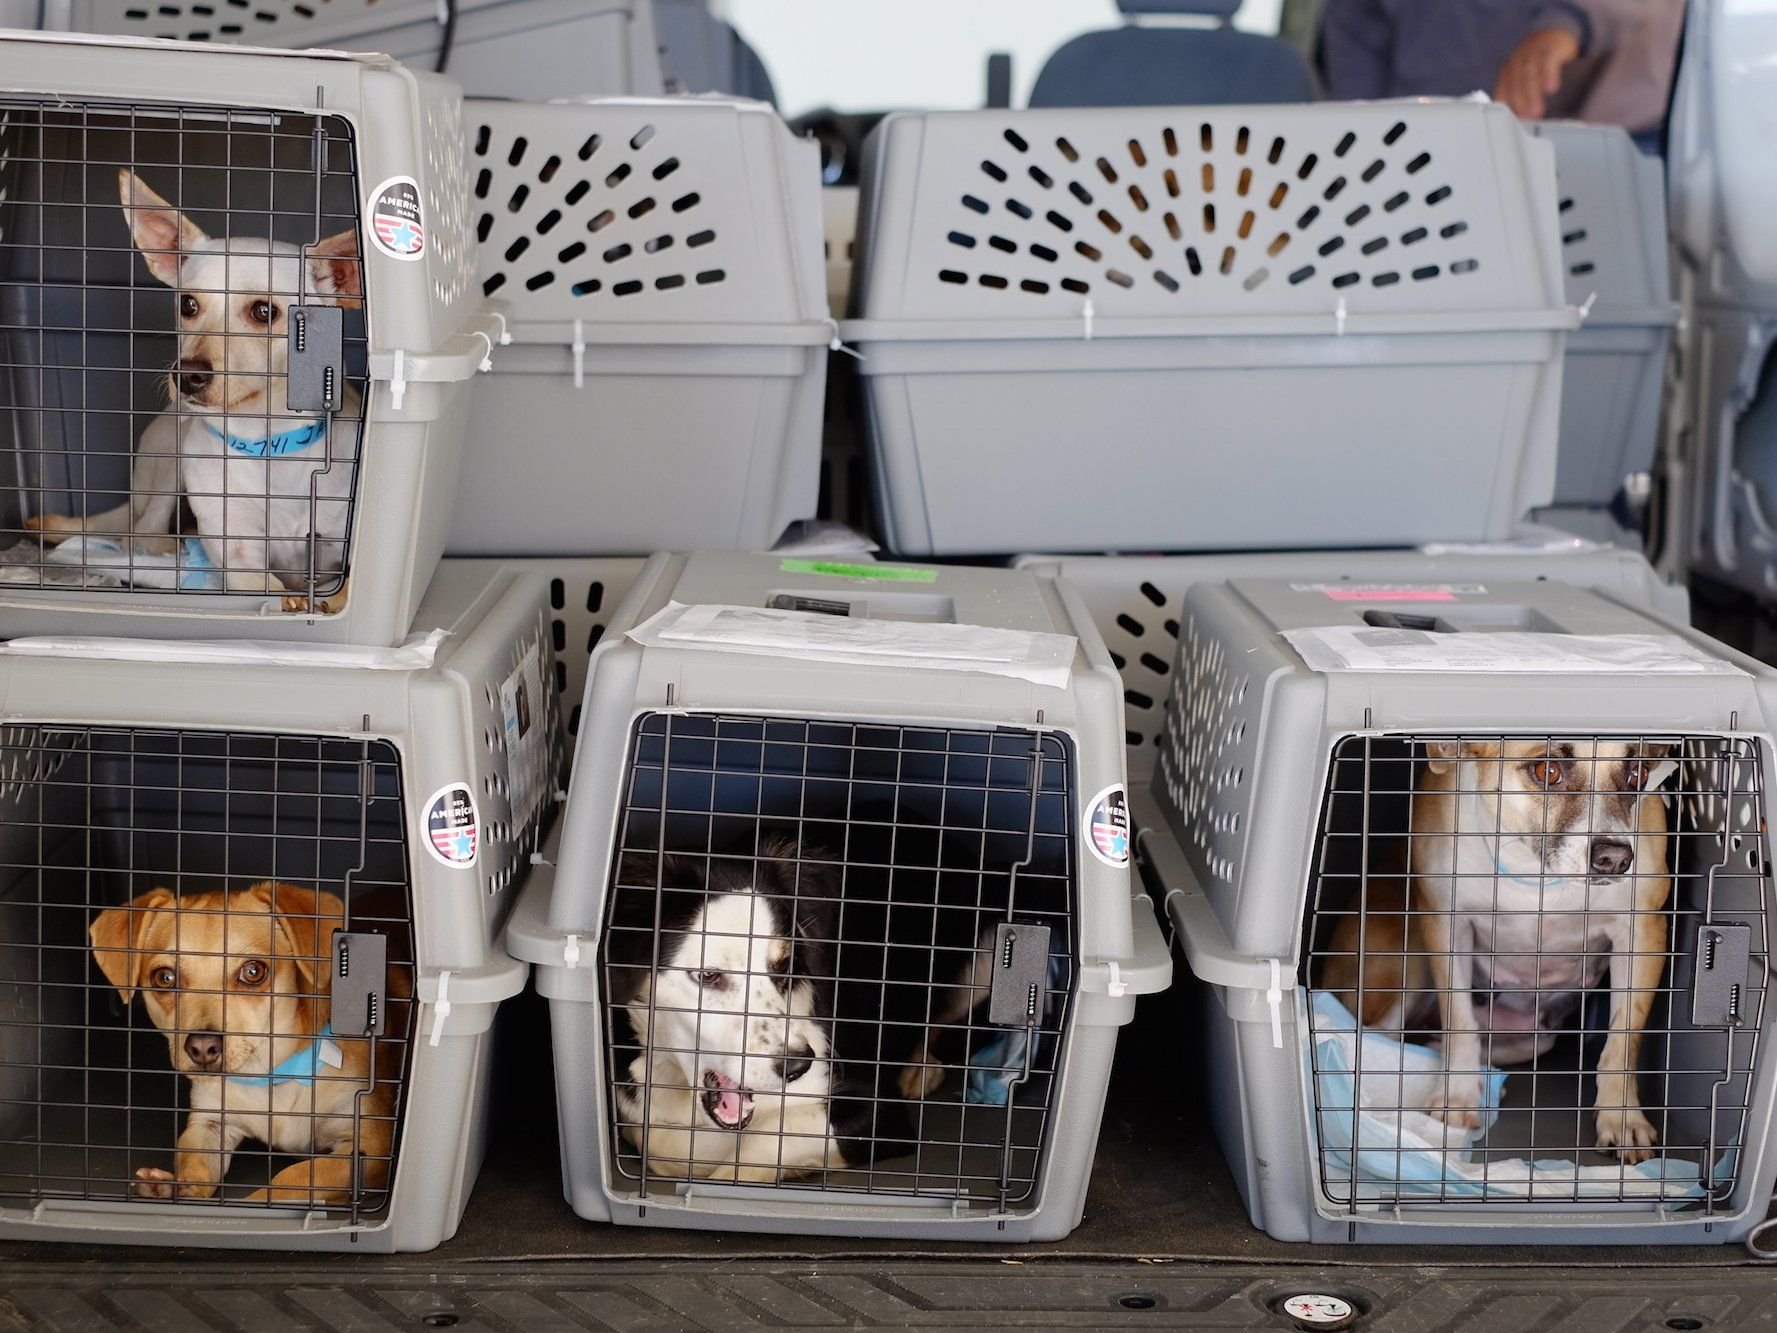 United settles with passenger whose puppy died in overhead